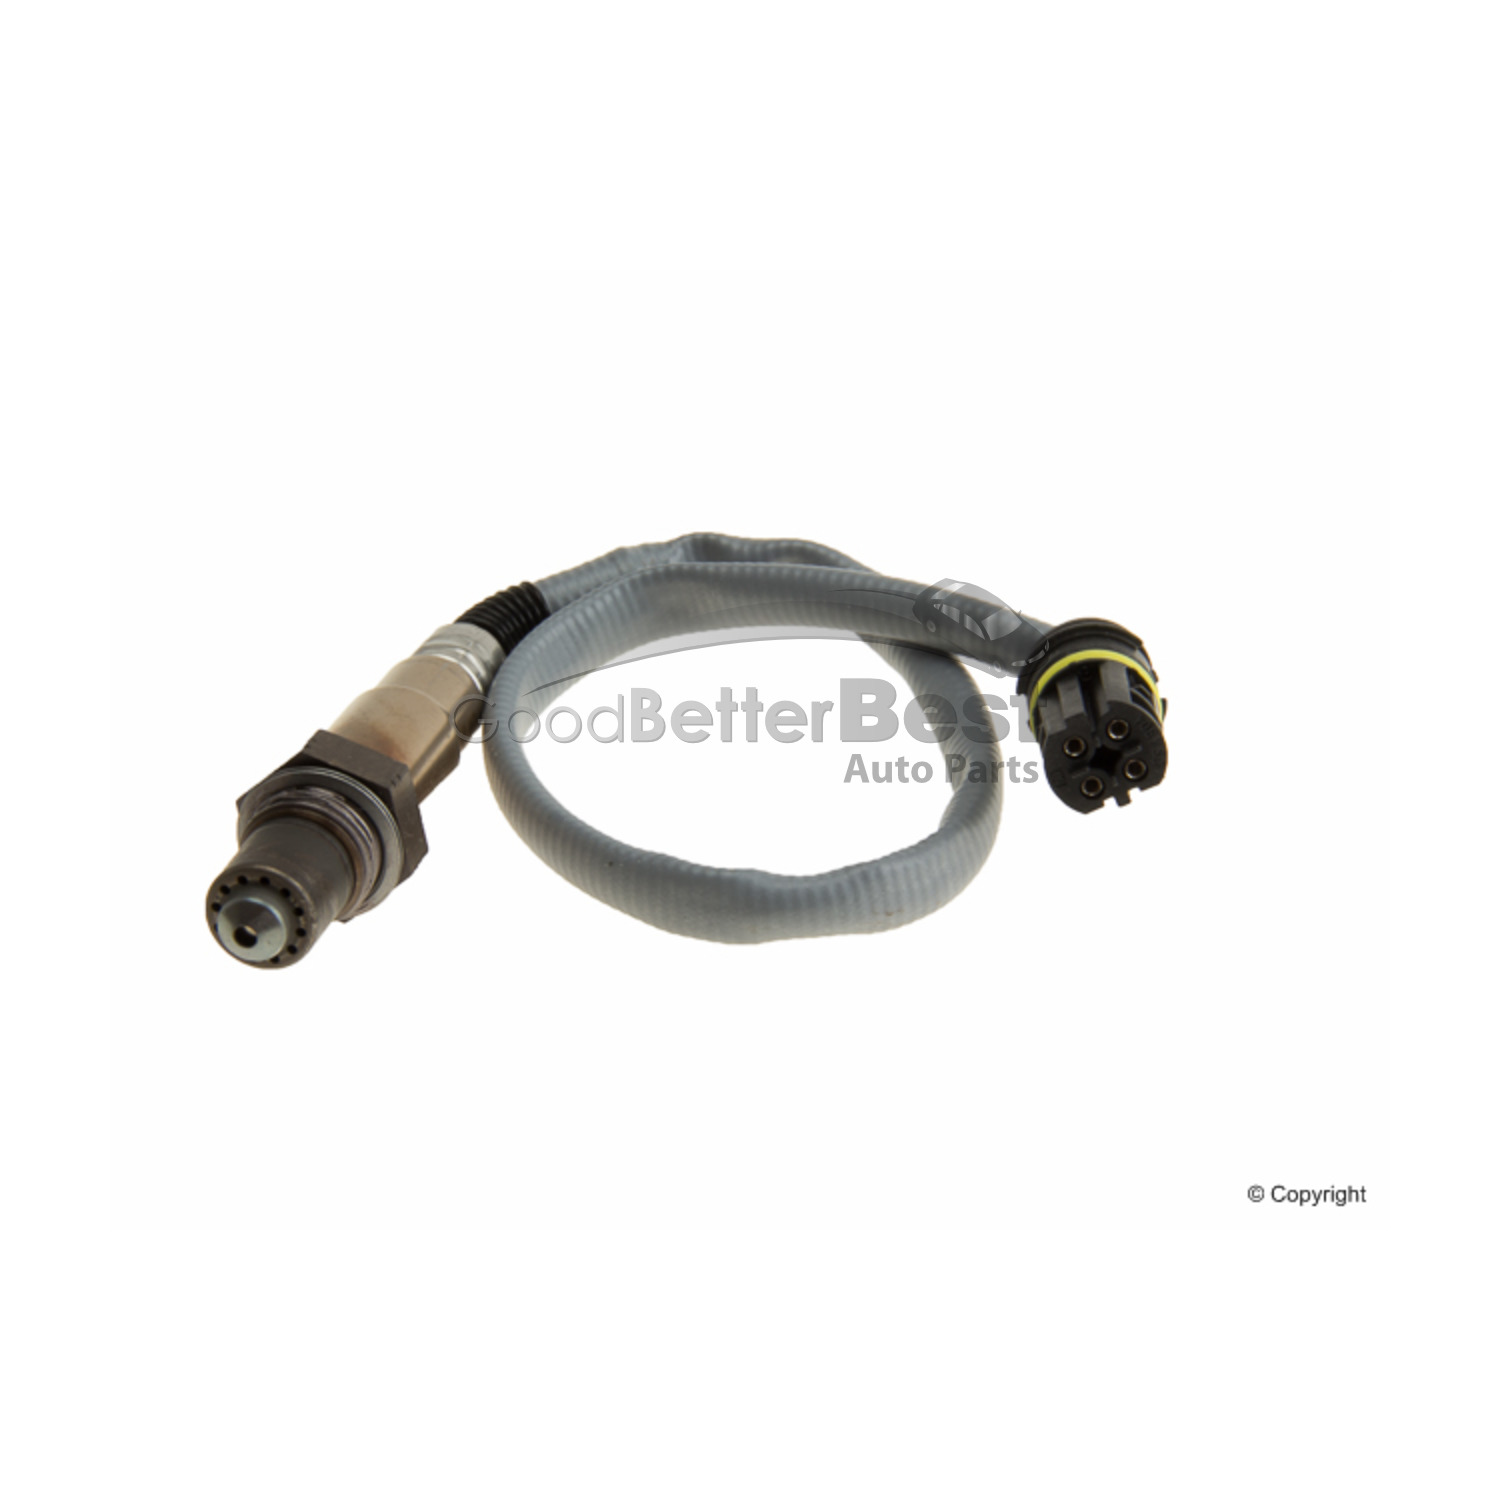 One New Bosch Oxygen Sensor Rear 11787539137 for BMW M5 M6 M6 Gran Coupe Z4